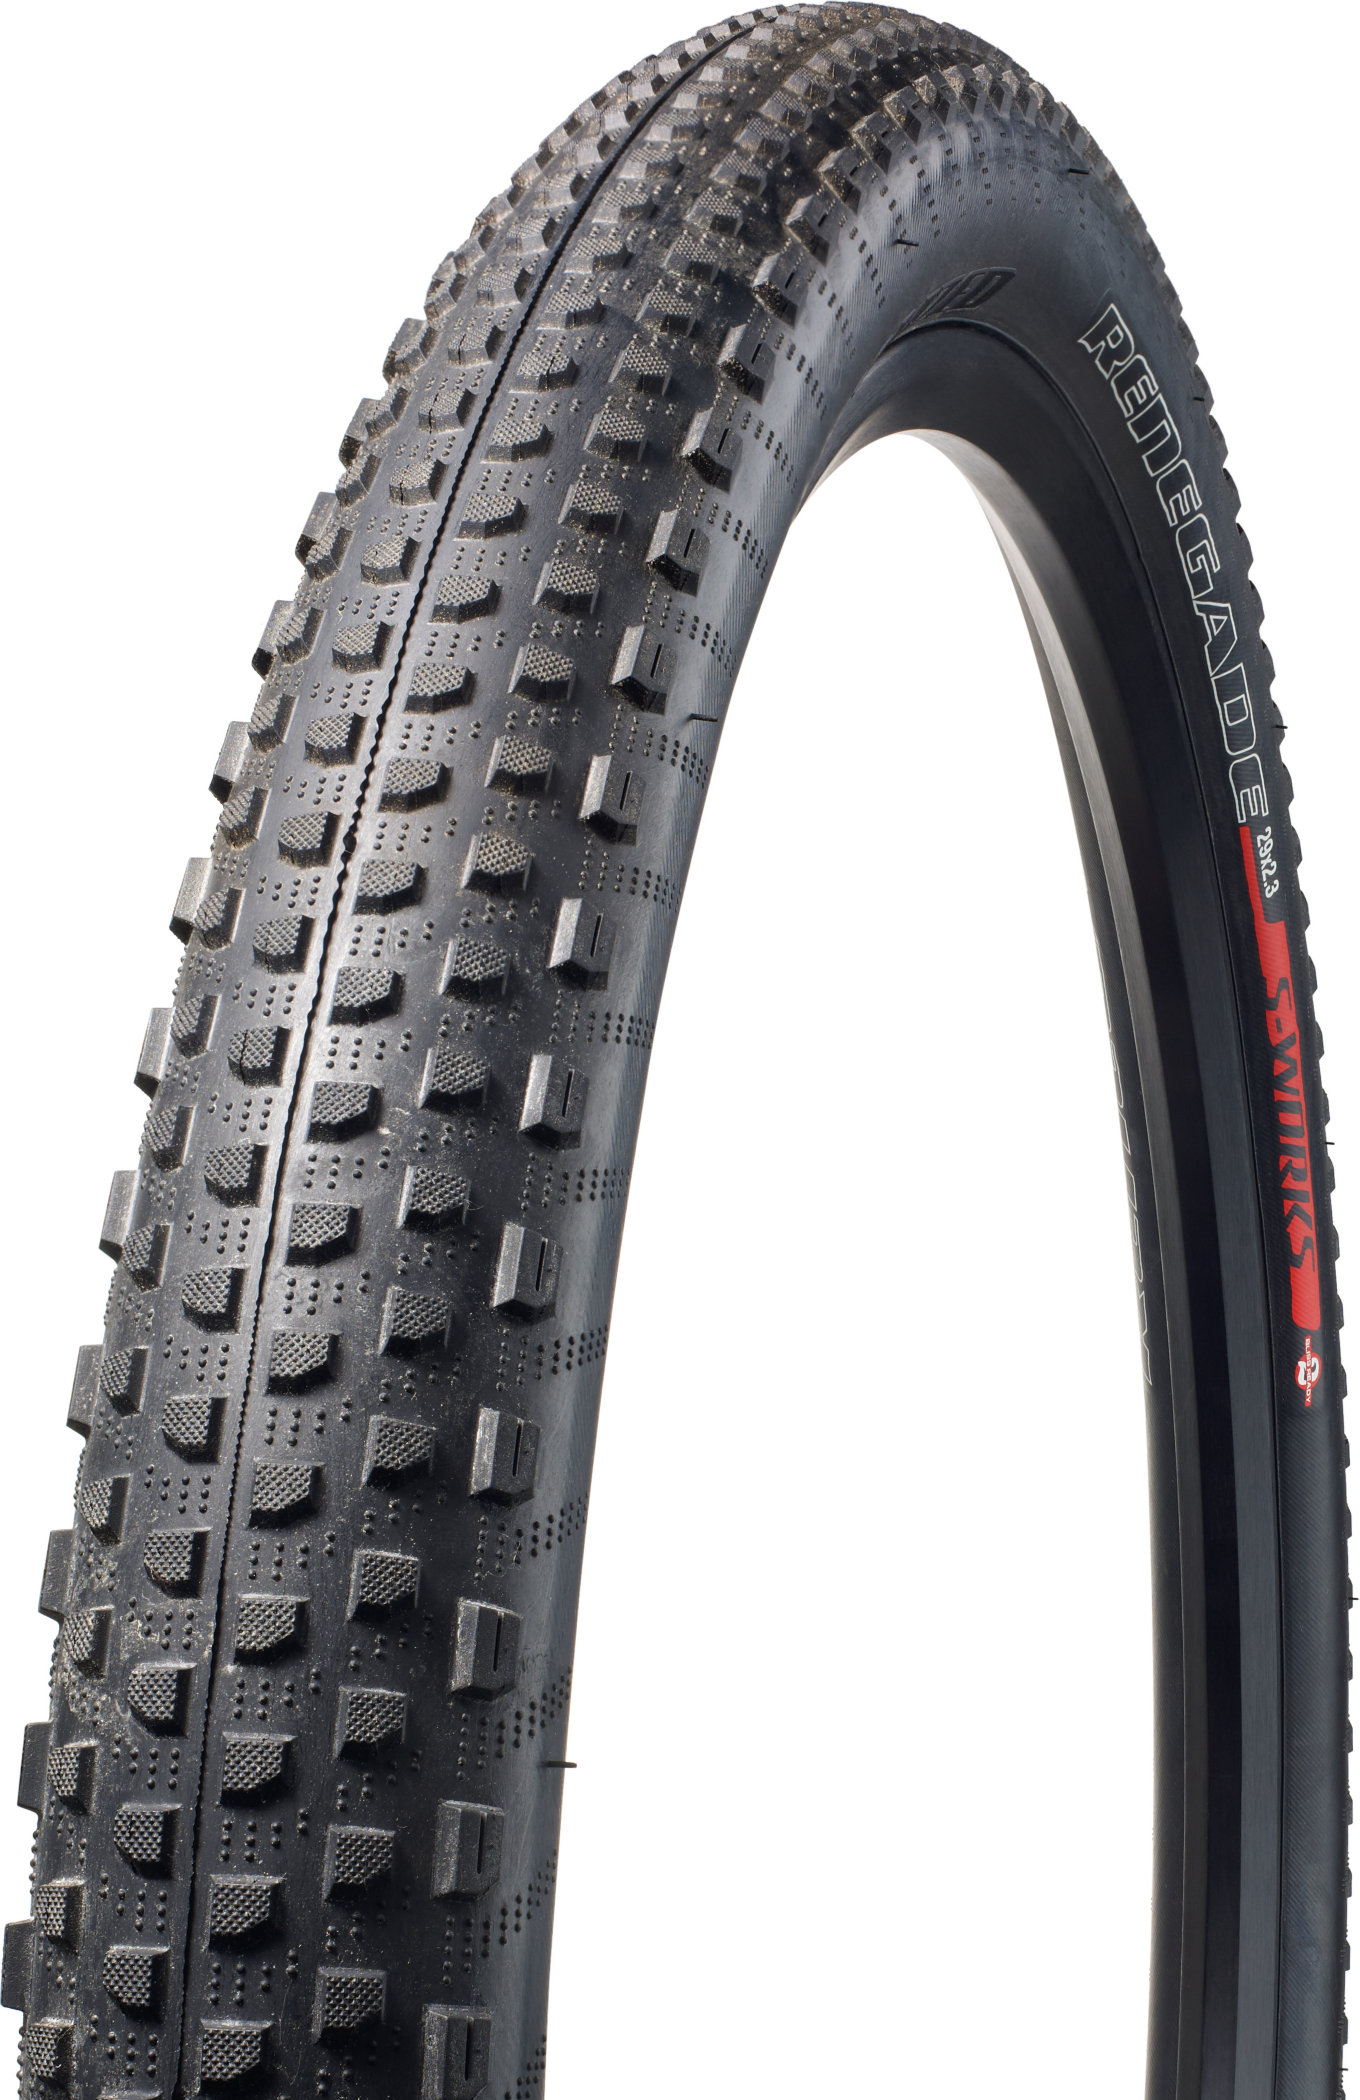 SPECIALIZED RENEGADE CONTROL 2BR TIRE 29X1.8 - SPECIALIZED RENEGADE CONTROL 2BR TIRE 29X1.8